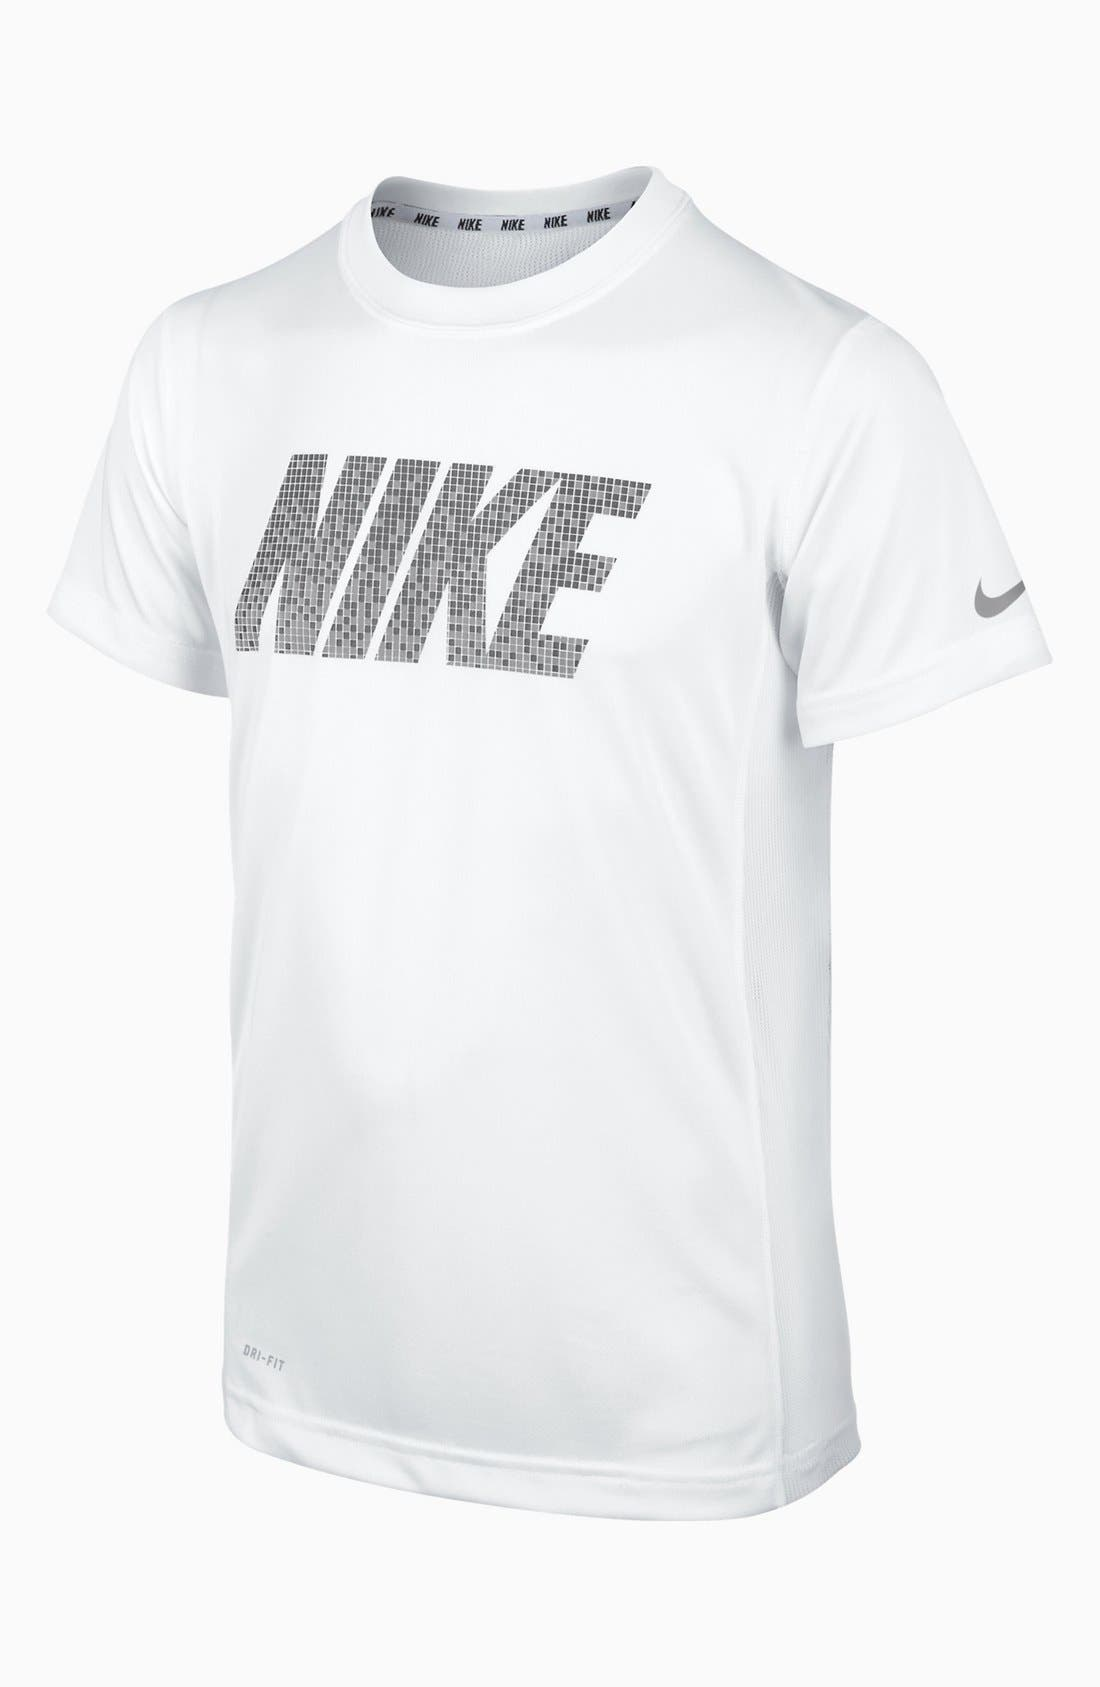 Main Image - Nike 'Speed' T-Shirt (Big Boys)